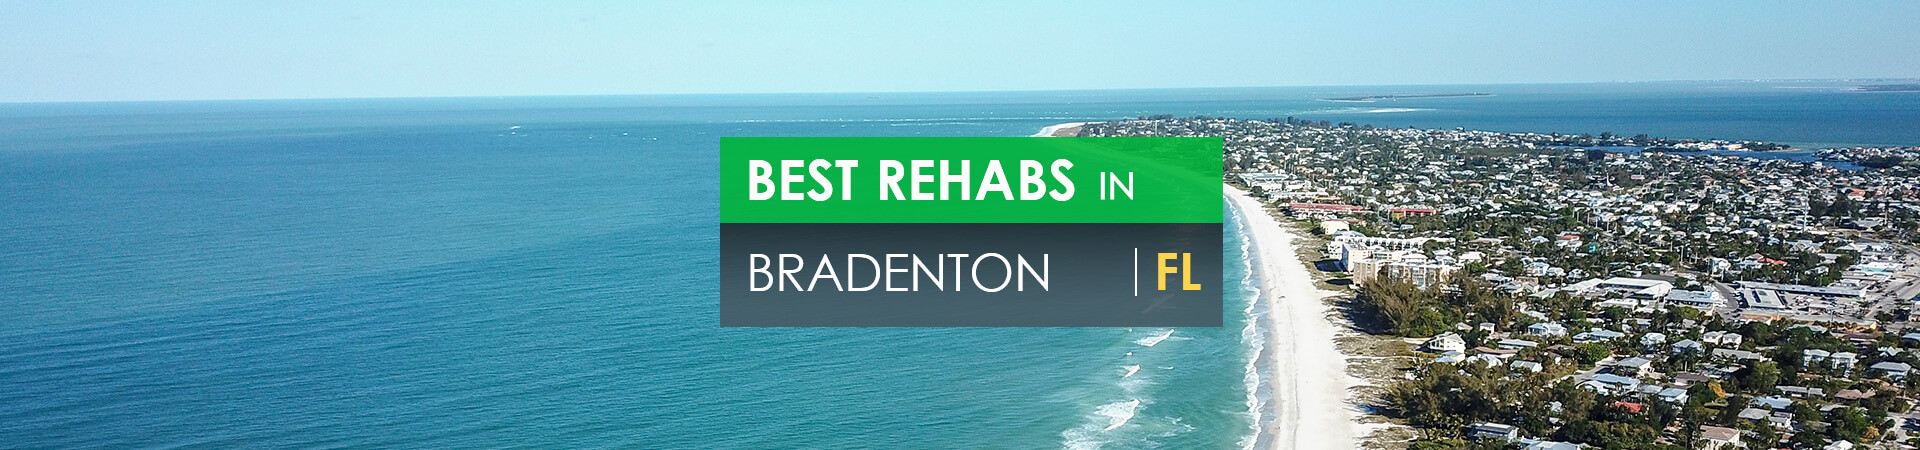 Best rehabs in Bradenton, FL